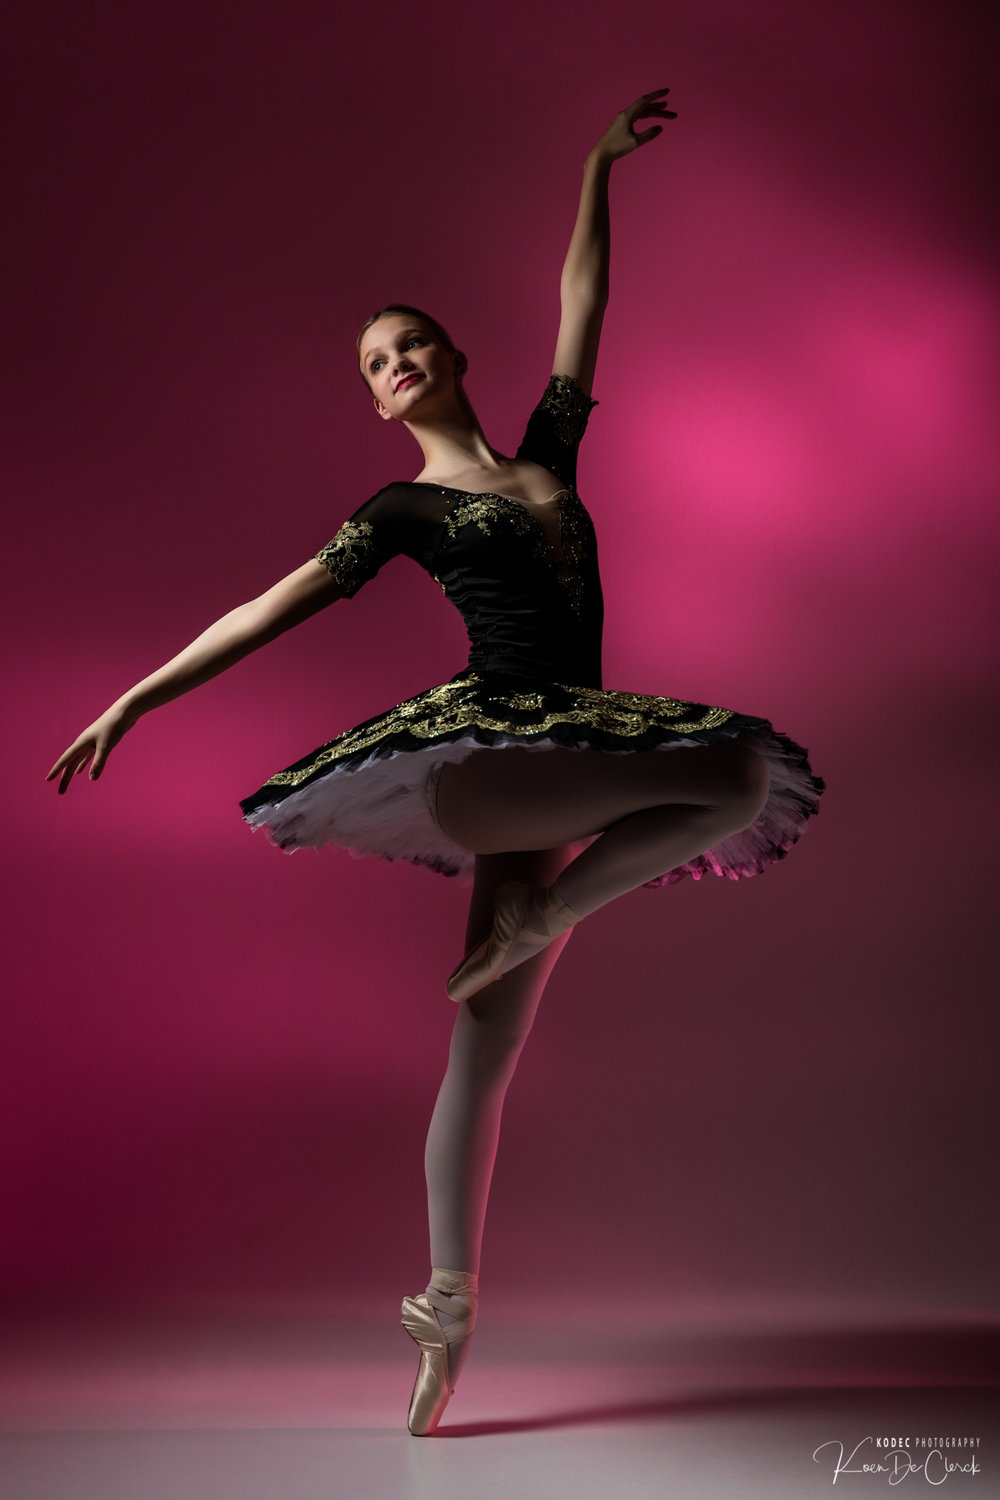 0746 Lisa-Marie Moody Dance Shoot Studio.jpg